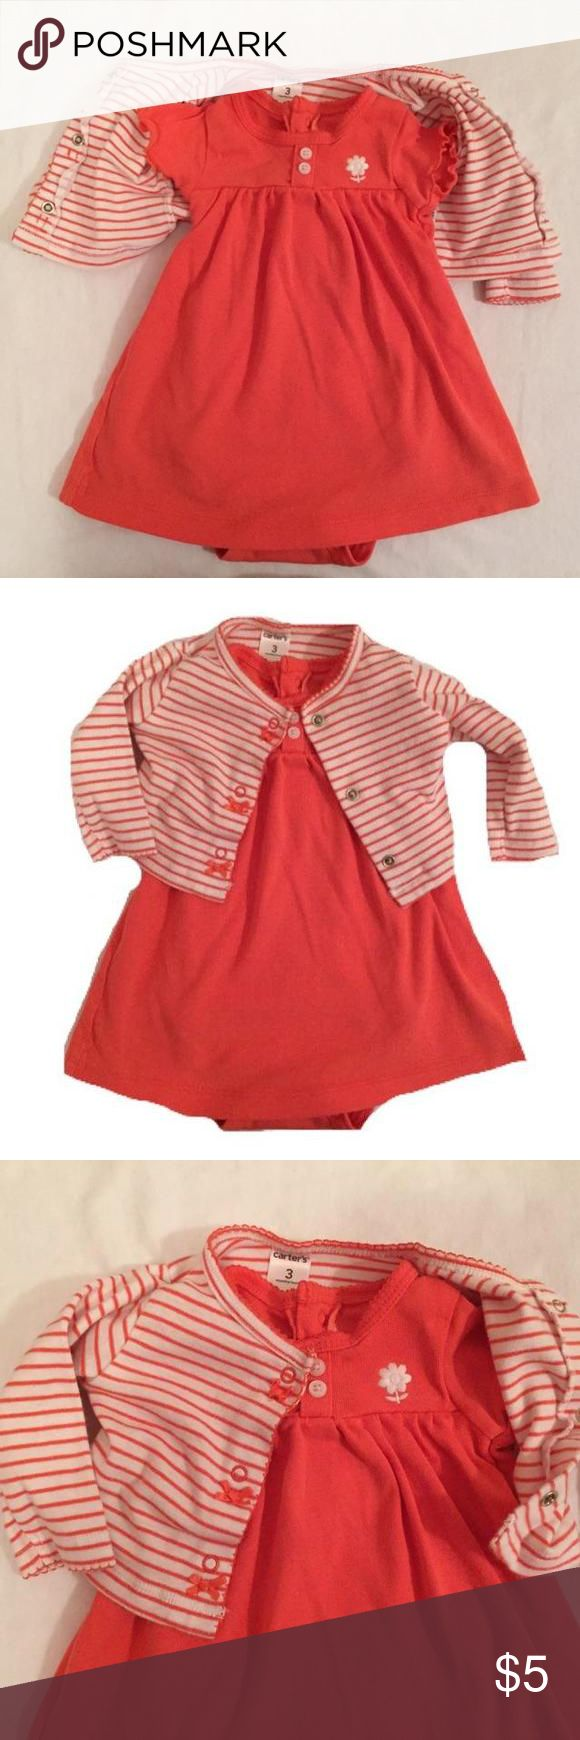 Carters dress and shrug Cotton summer dress and matching shrug for baby girl! Practically brand new! Carters Dresses